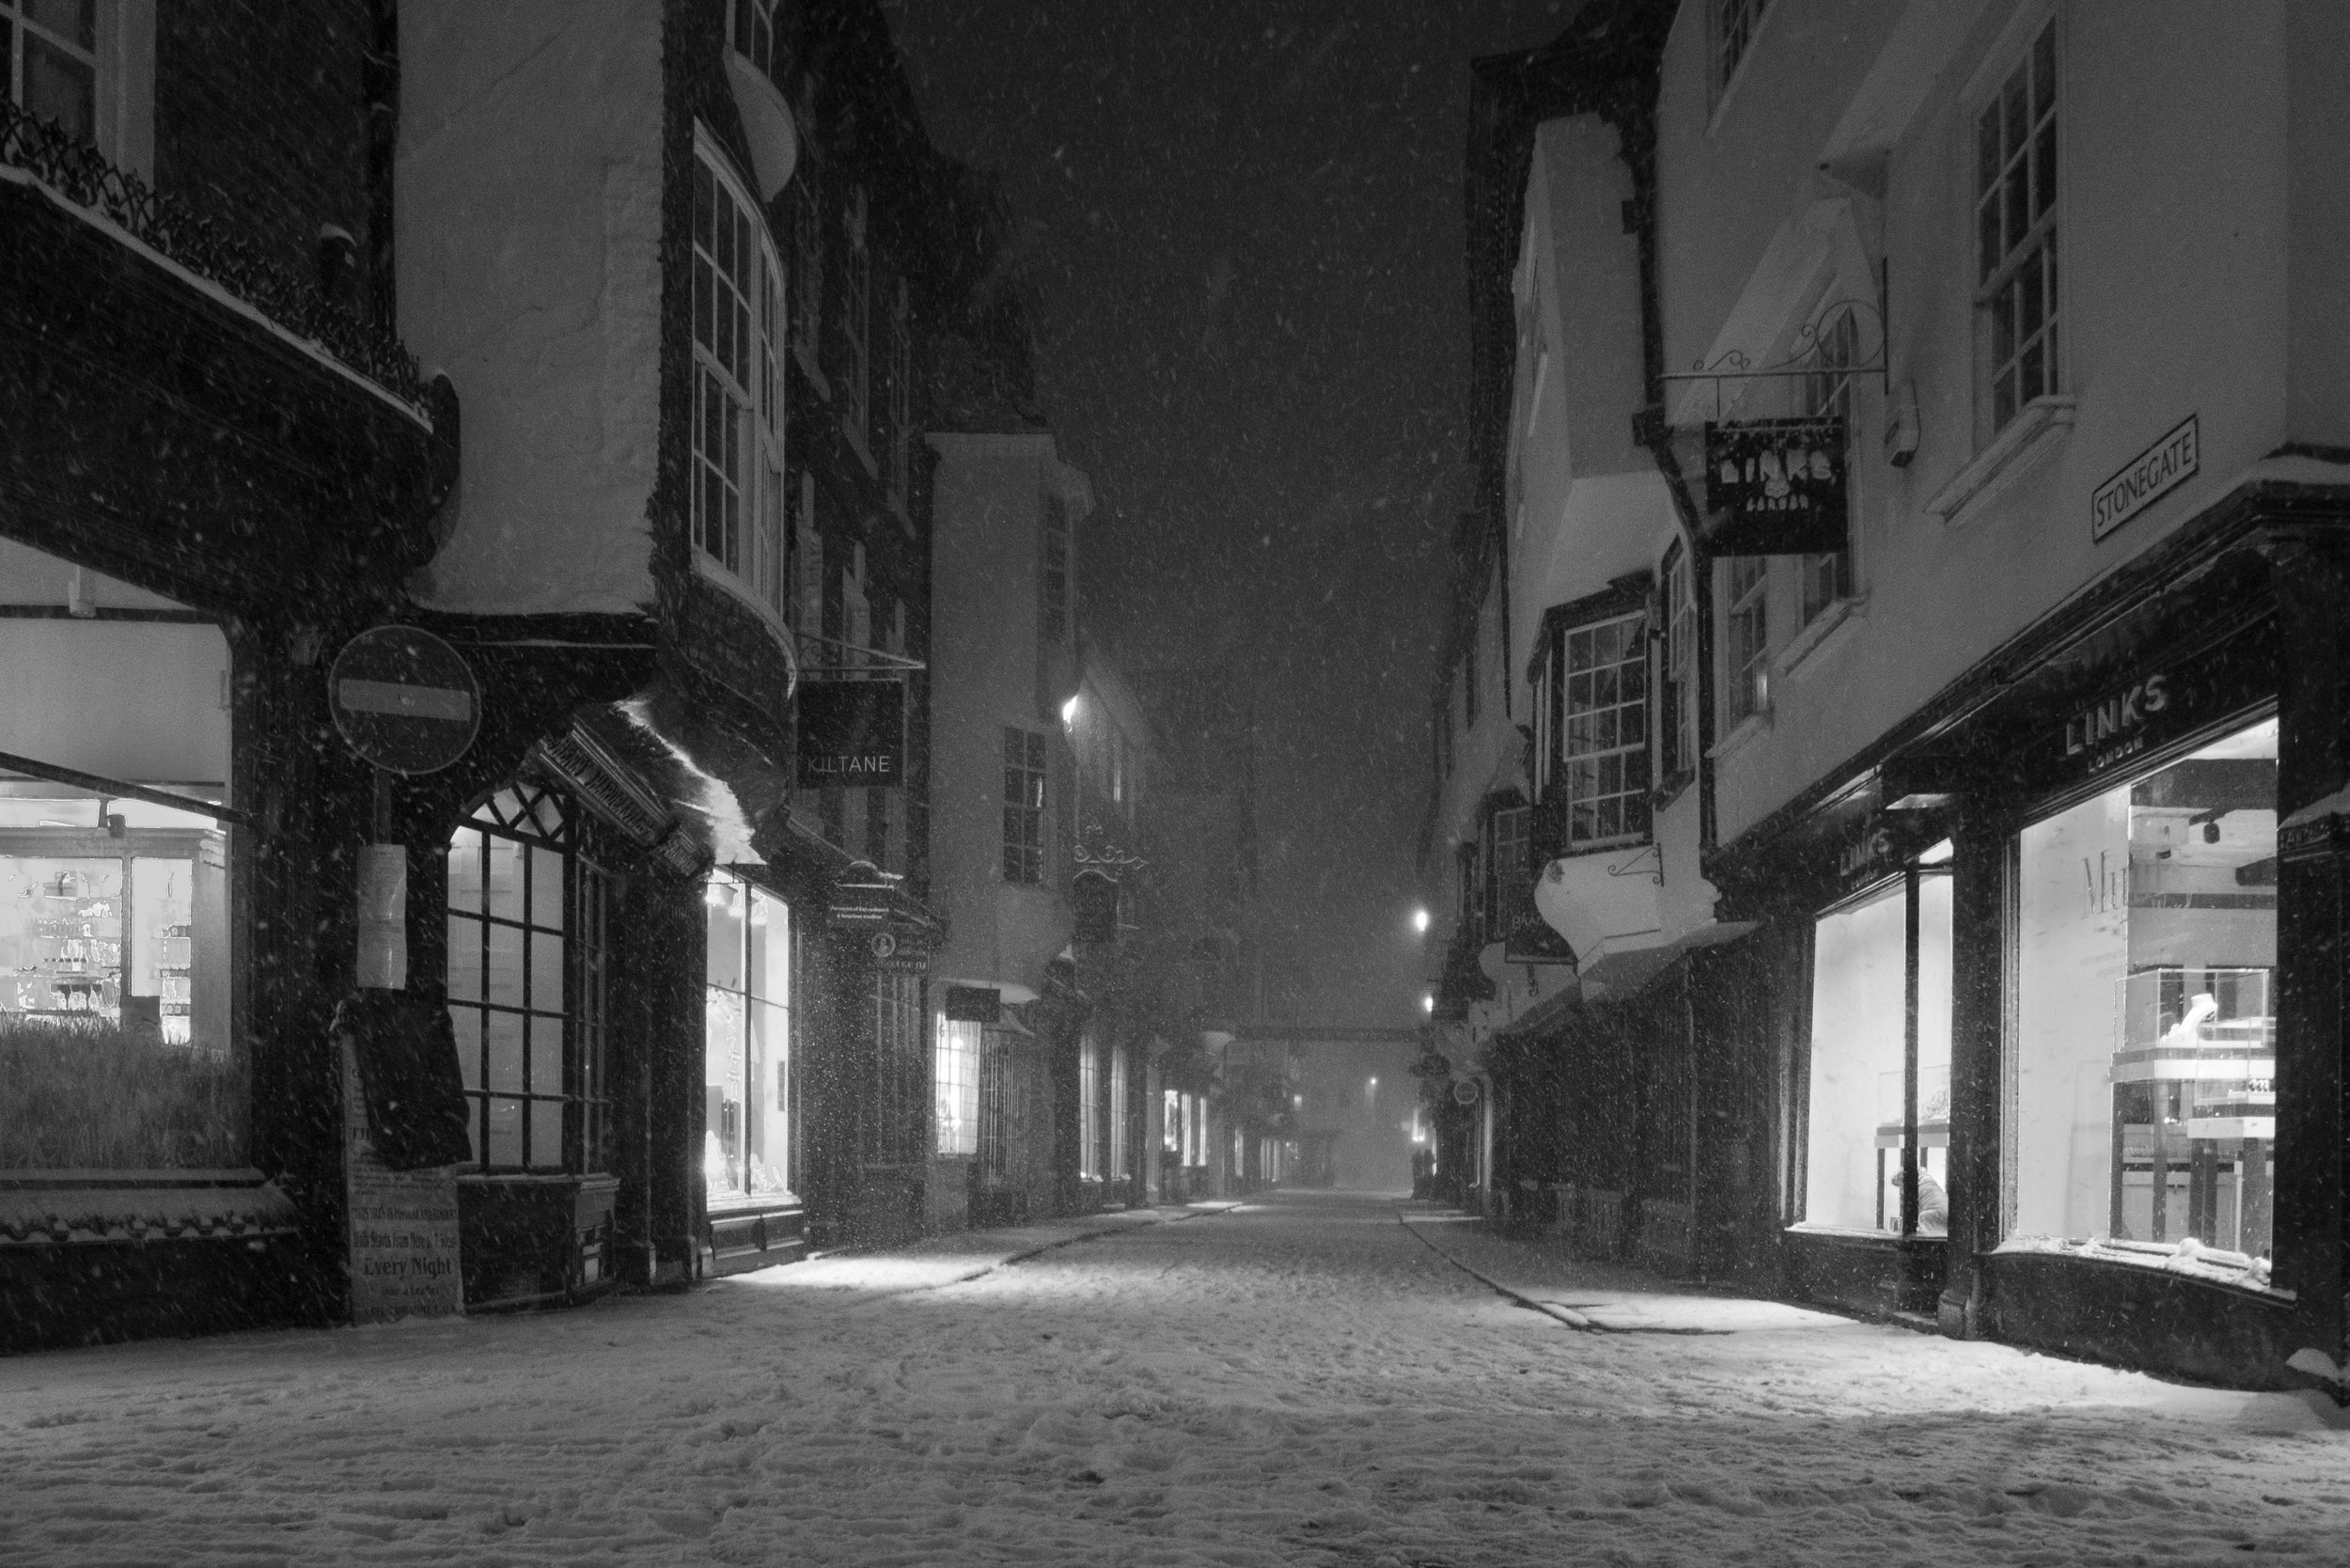 Snow storm in the historic city of York